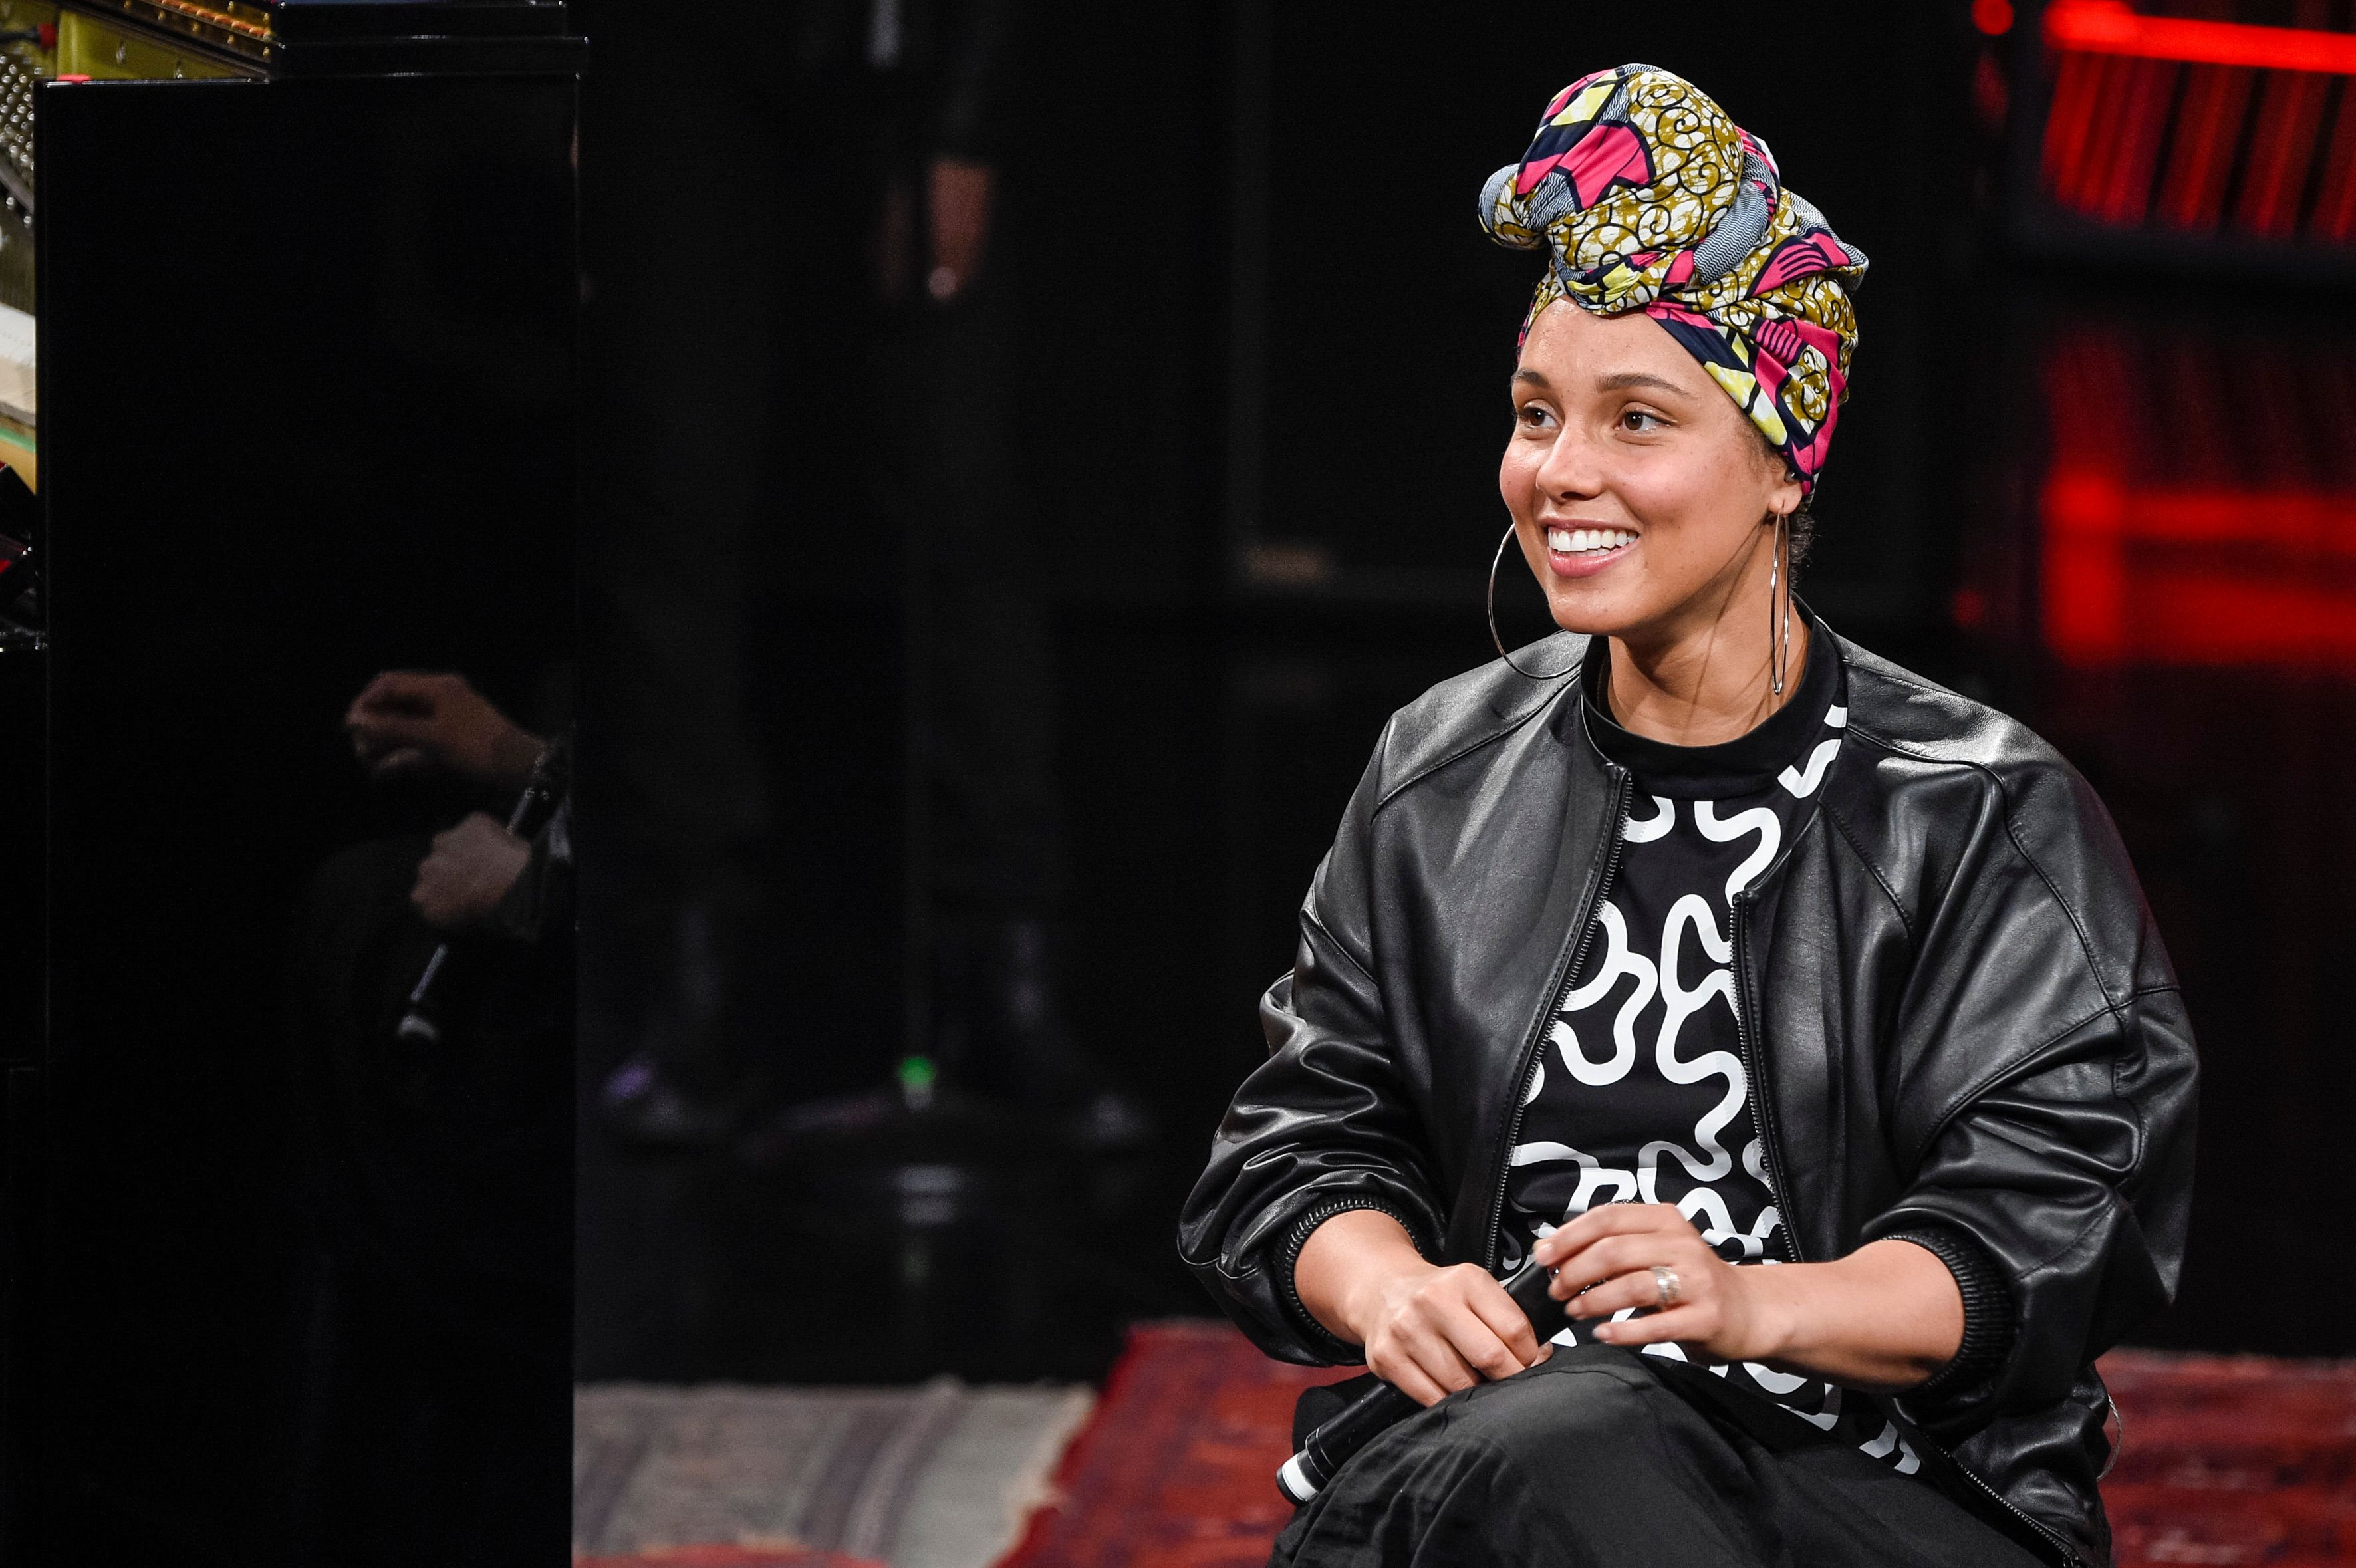 MILAN, ITALY - JUNE 12:  Alicia Keys attends at 'Che Tempo Che Fa' Tv Show on June 12, 2016 in Milan, Italy.  (Photo by Pietro D'aprano/Getty Images)